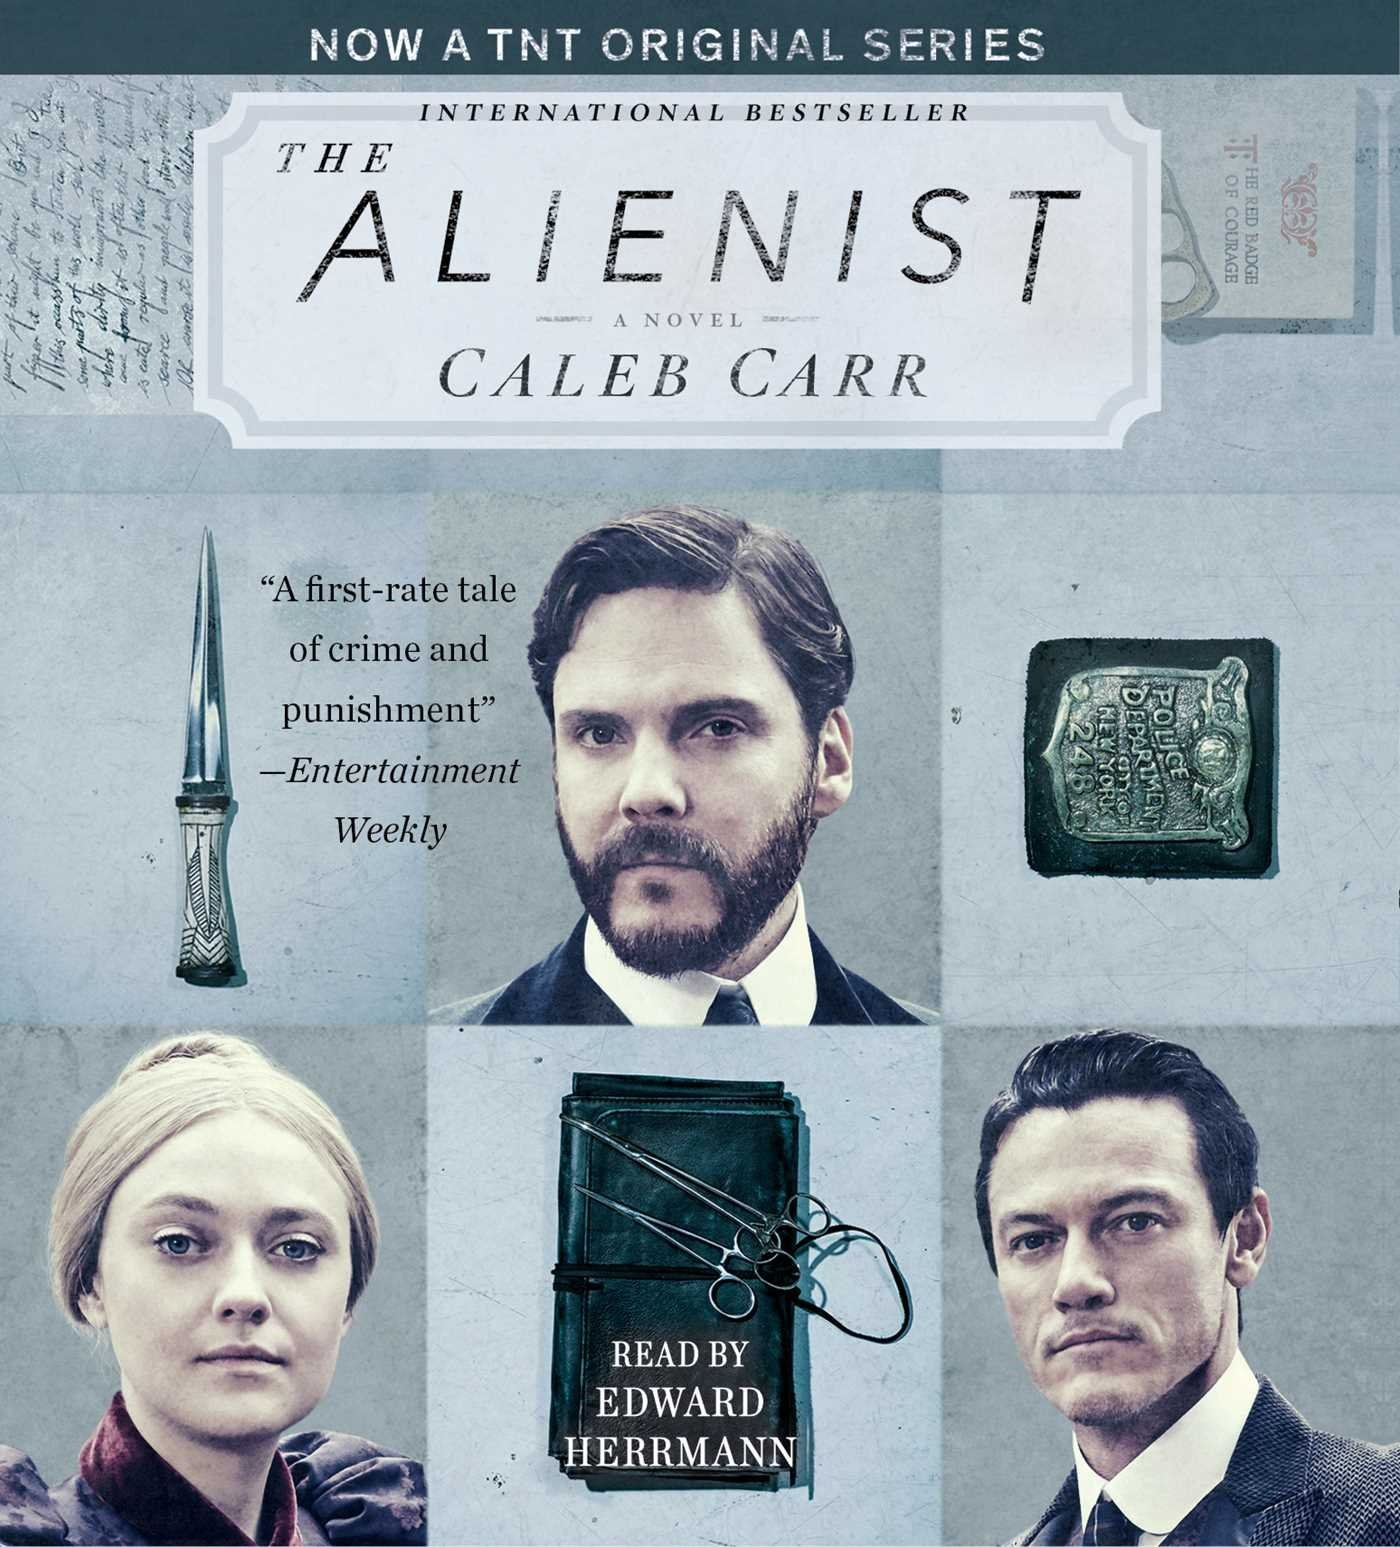 Mystery Book Club - The Alienist by Caleb Carr